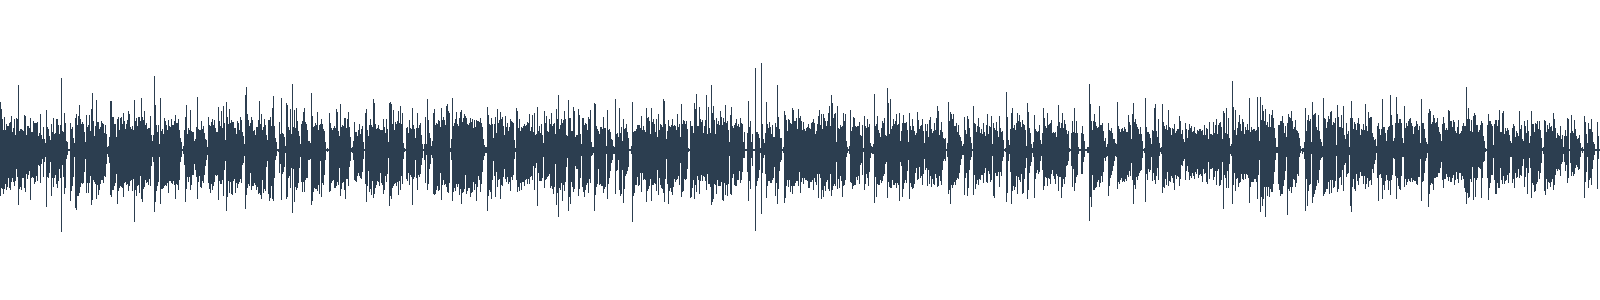 Majster a Margaréta waveform